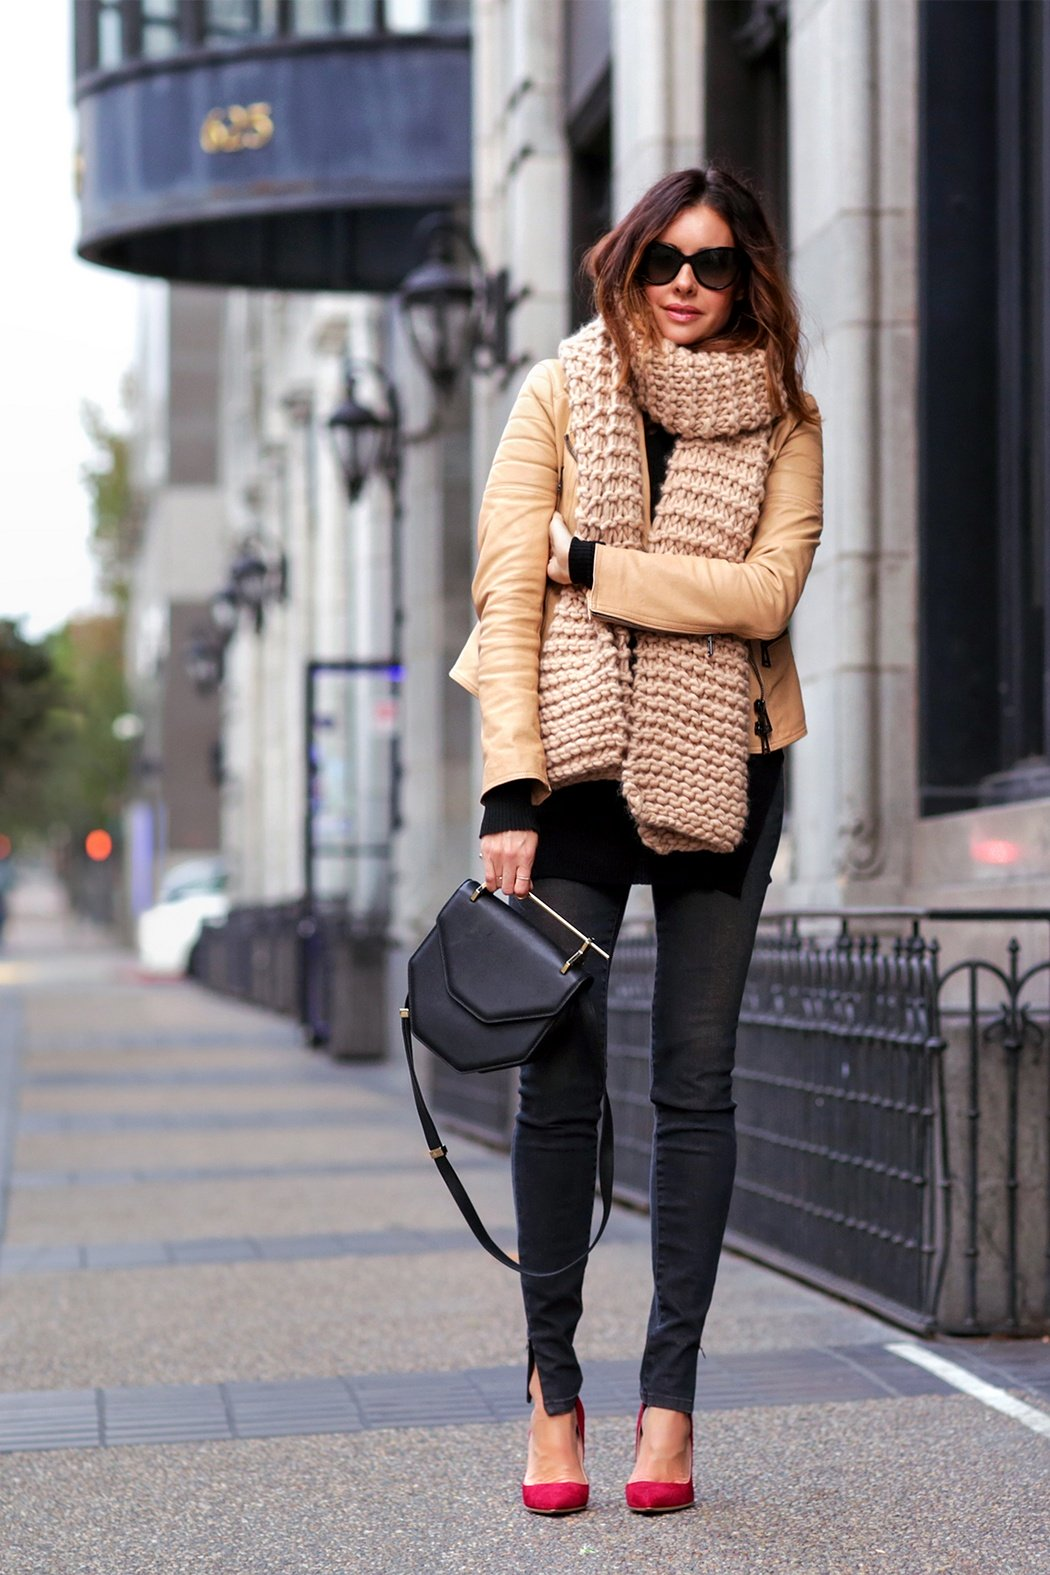 The puffer jacket trend is experiencing a revival this season. Erica Hoida accessorises this camel coat with a gorgeous chunky knit scarf; the ultimate winter piece. Jacket: Belstaff, Shirt: Helmut Lang, Jeans: Victoria Beckham, Shoes: Rupert Sanderson, Scarf: I Love Mr. Mittens , Bag: M2Malletier.